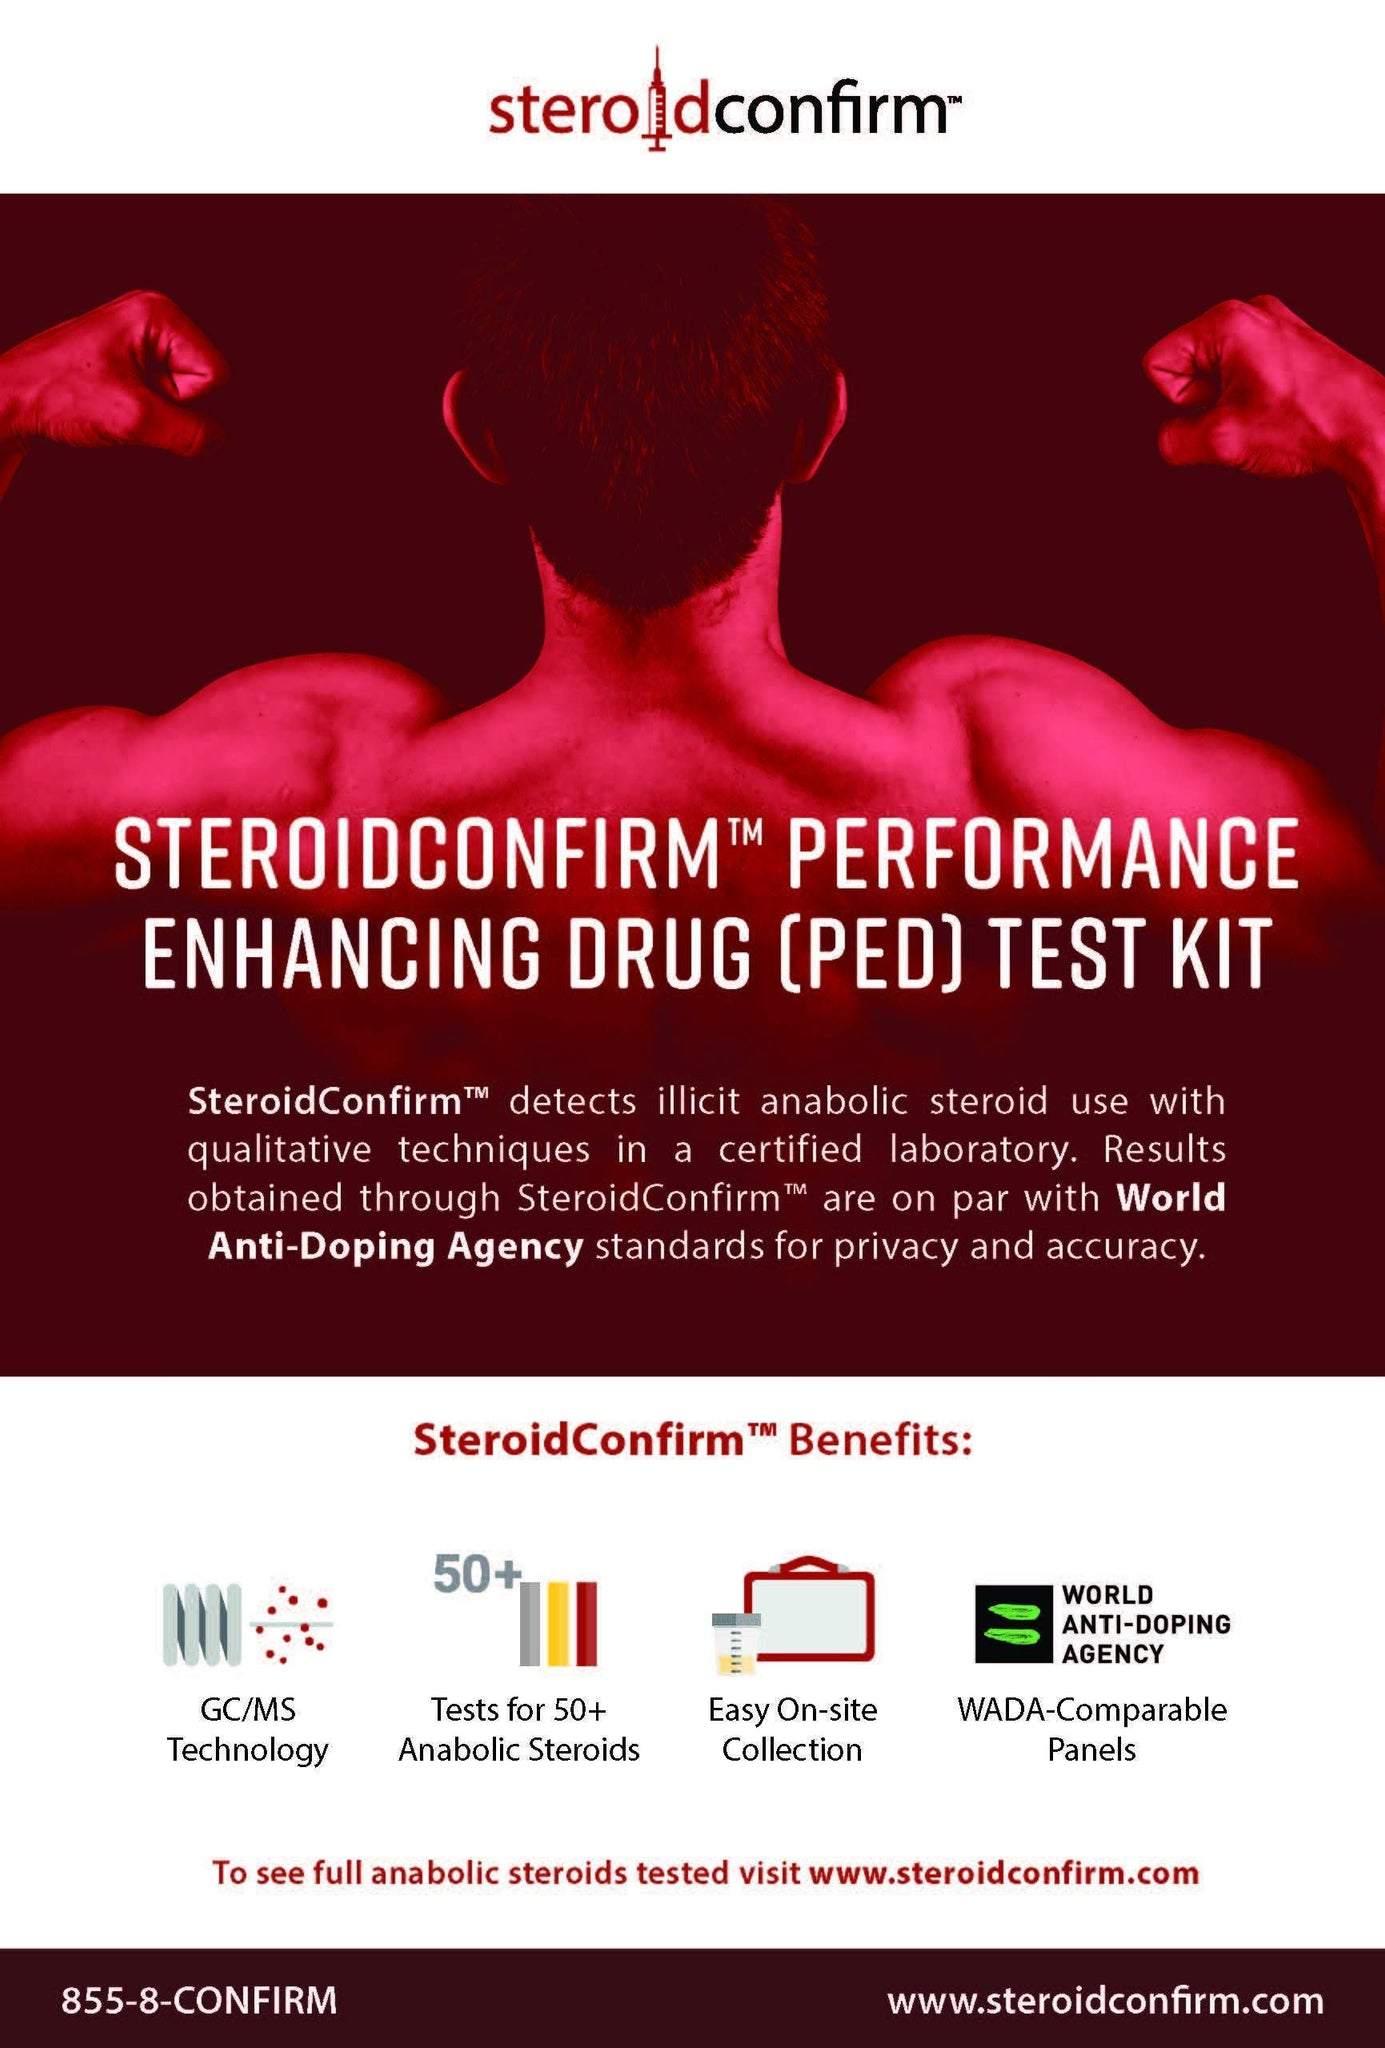 SteroidConfirm™ Business Test Kit